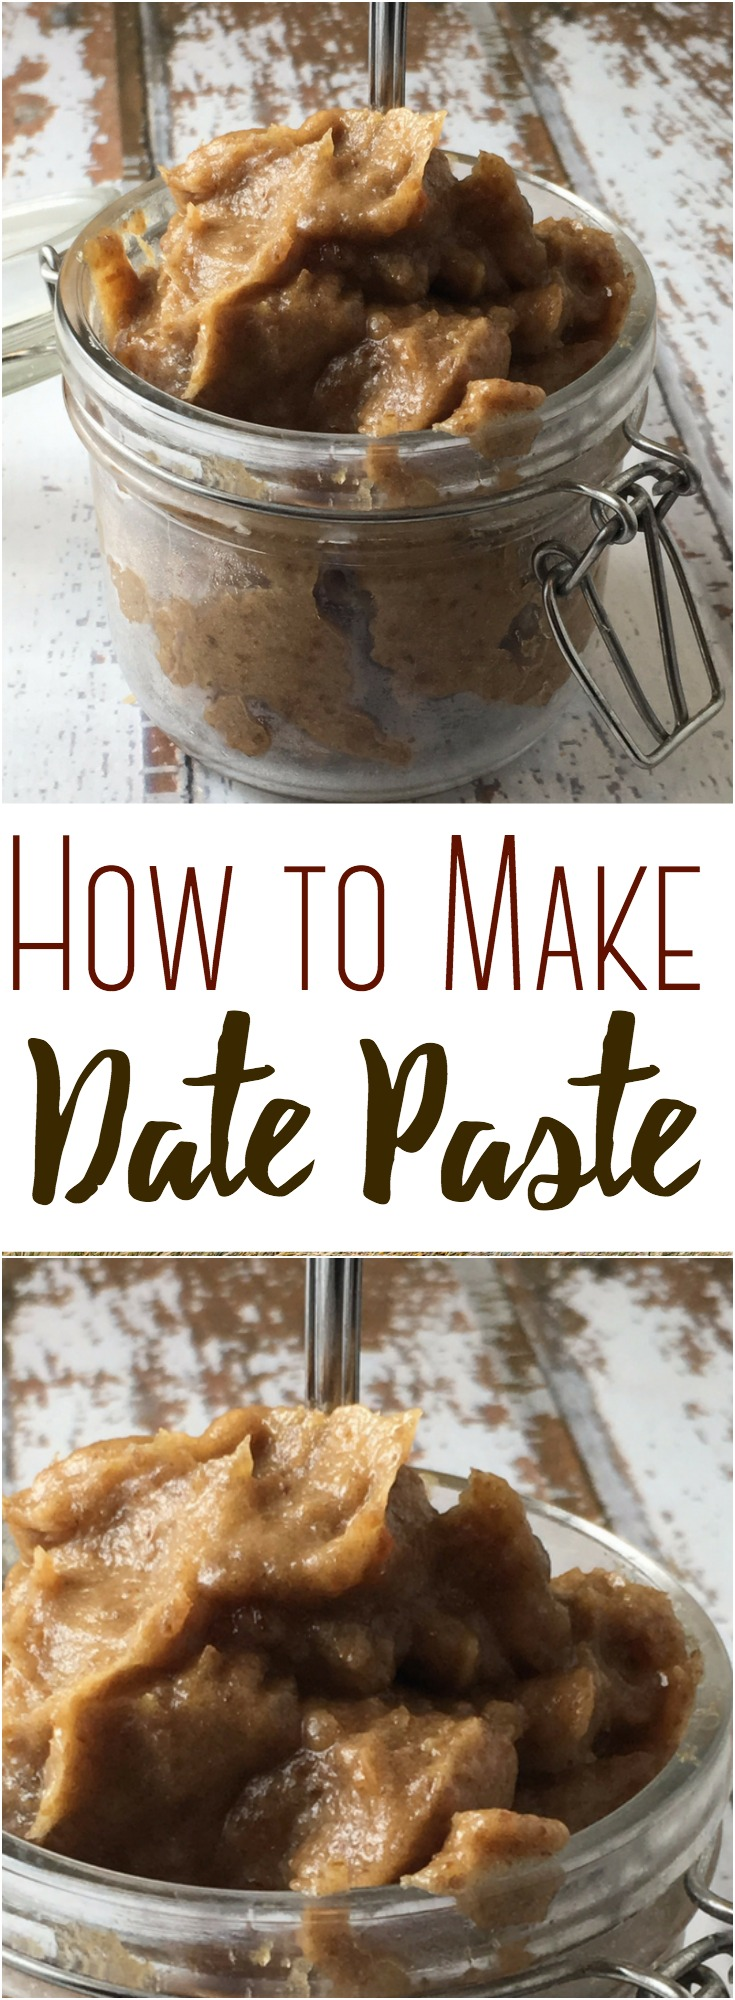 A lower glycemic alternative to sugar, date paste is a healthier way to sweeten just about anything. Find out how to make date paste at home.